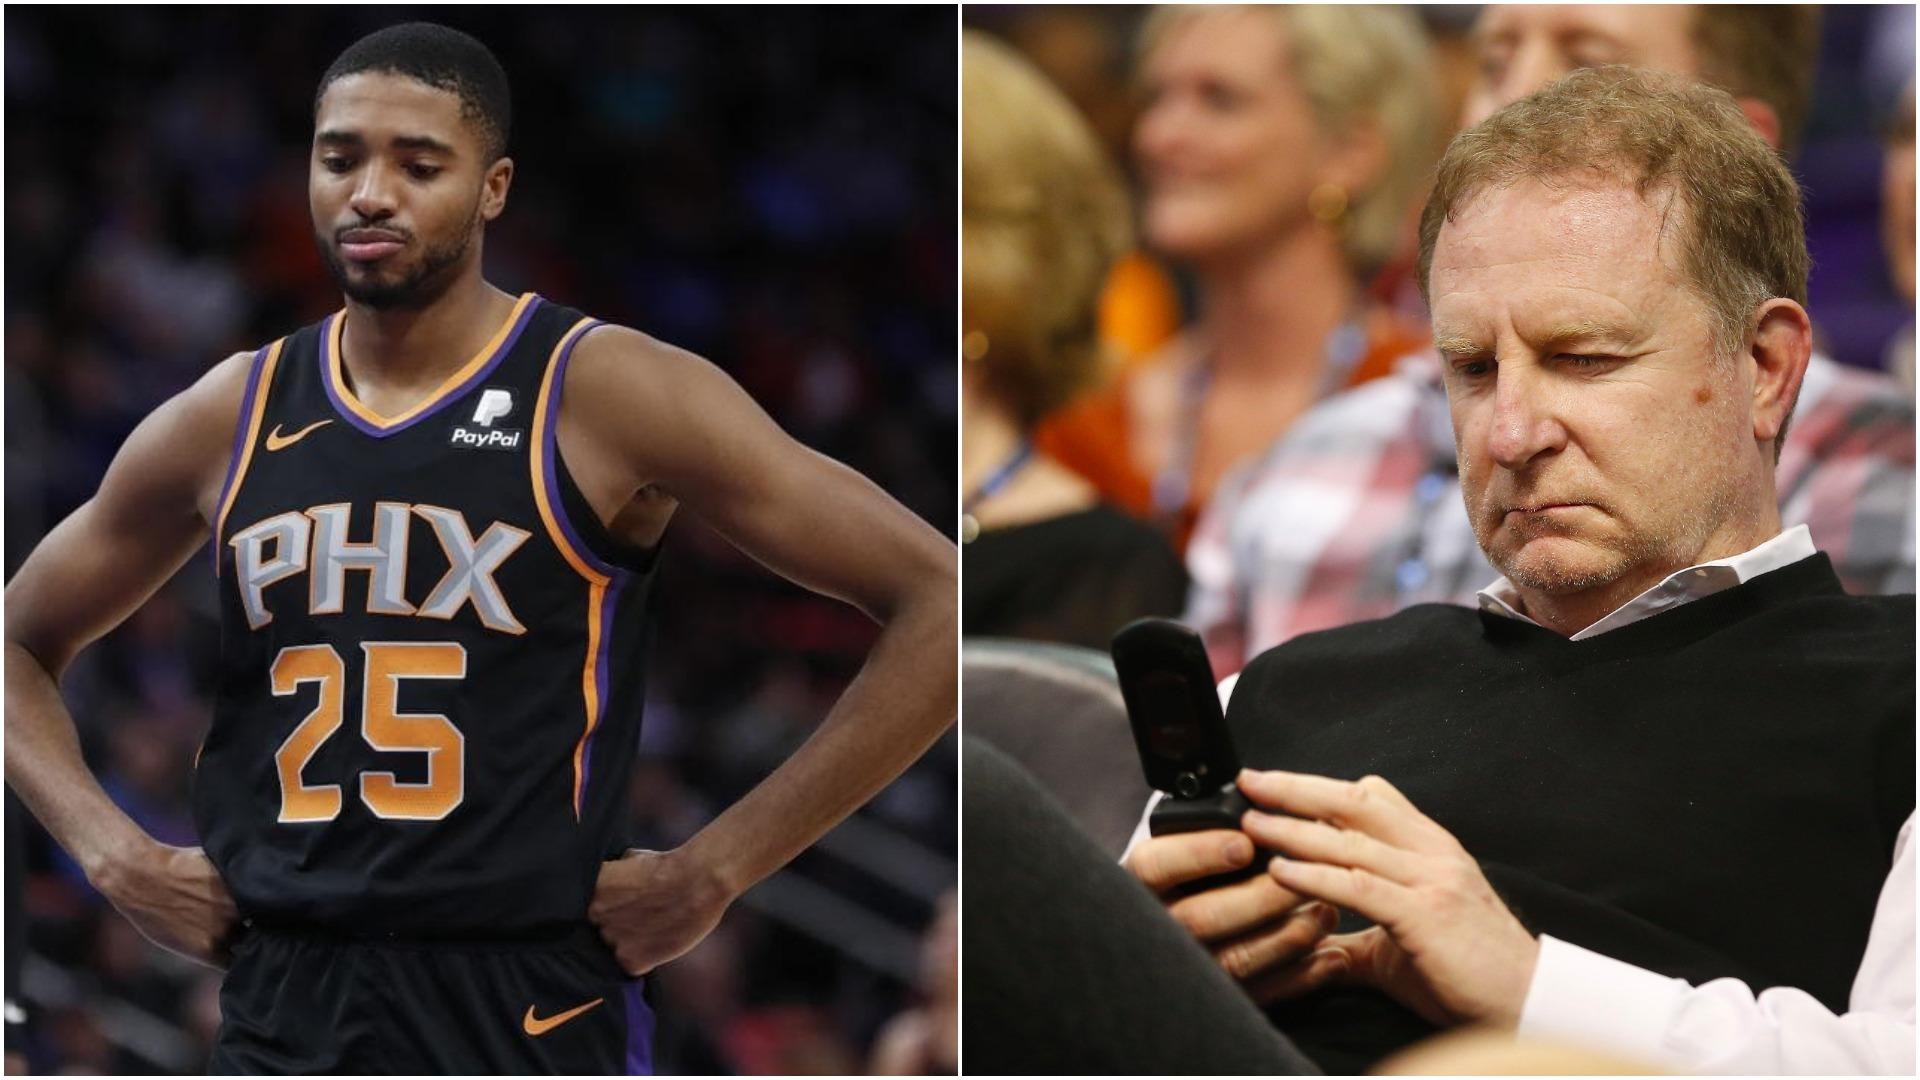 Suns owner threatens to move National Basketball Association franchise to Seattle